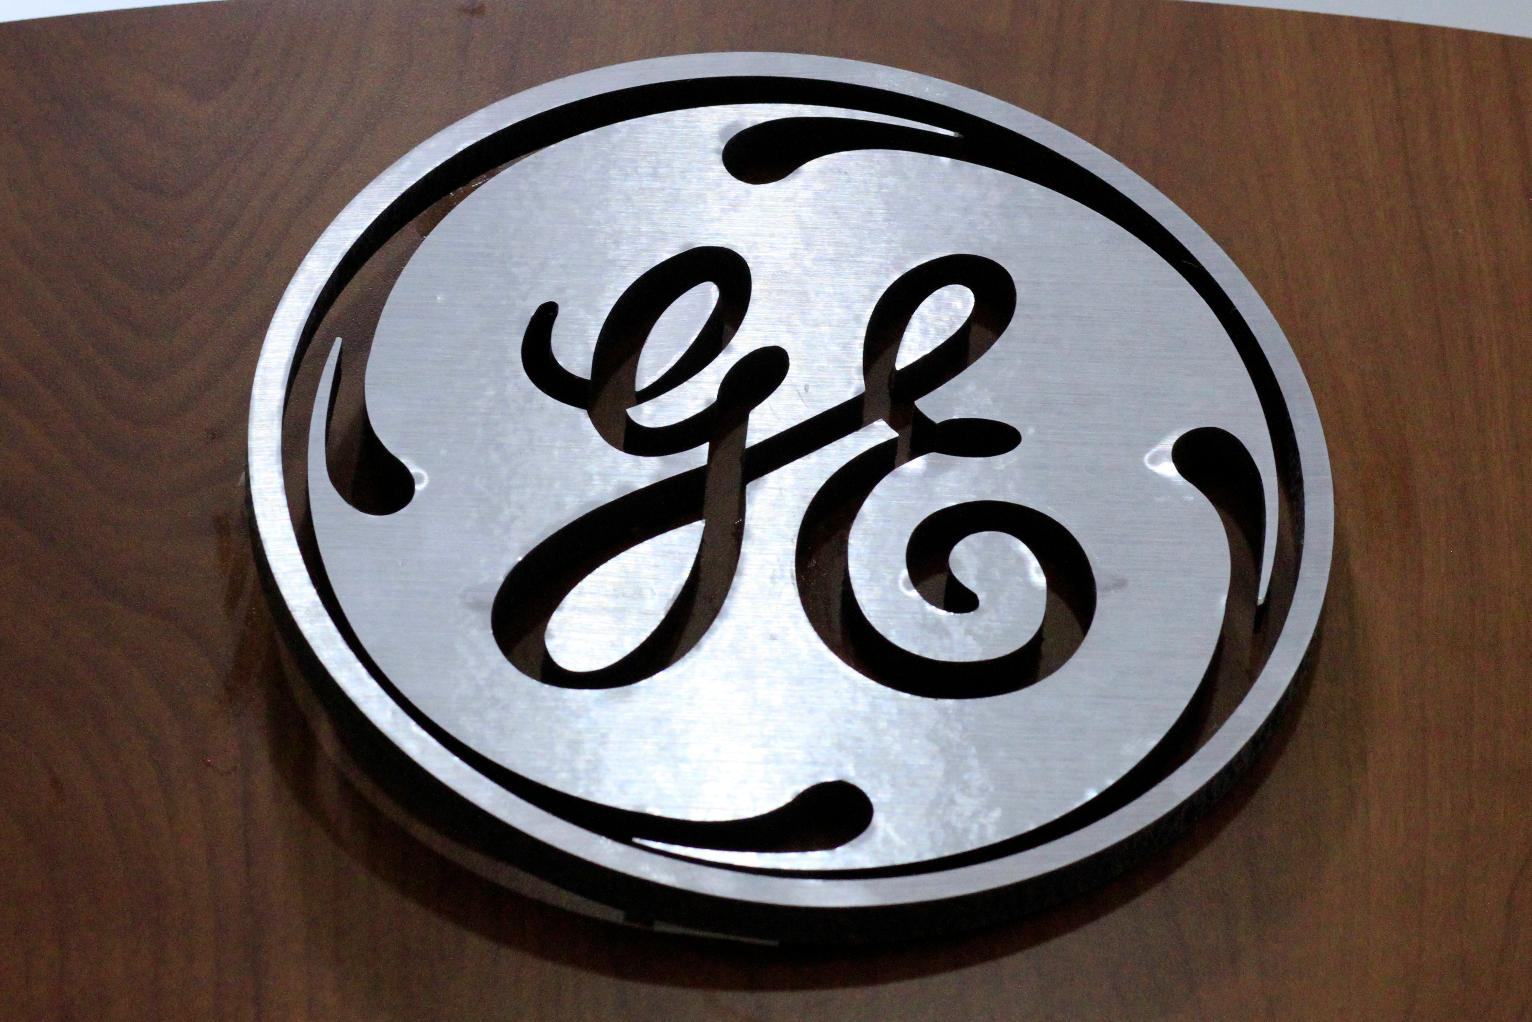 General electric company ge stock needs clarity amid breakup general electric company ge stock needs clarity amid breakup rumors stock market news us news biocorpaavc Gallery